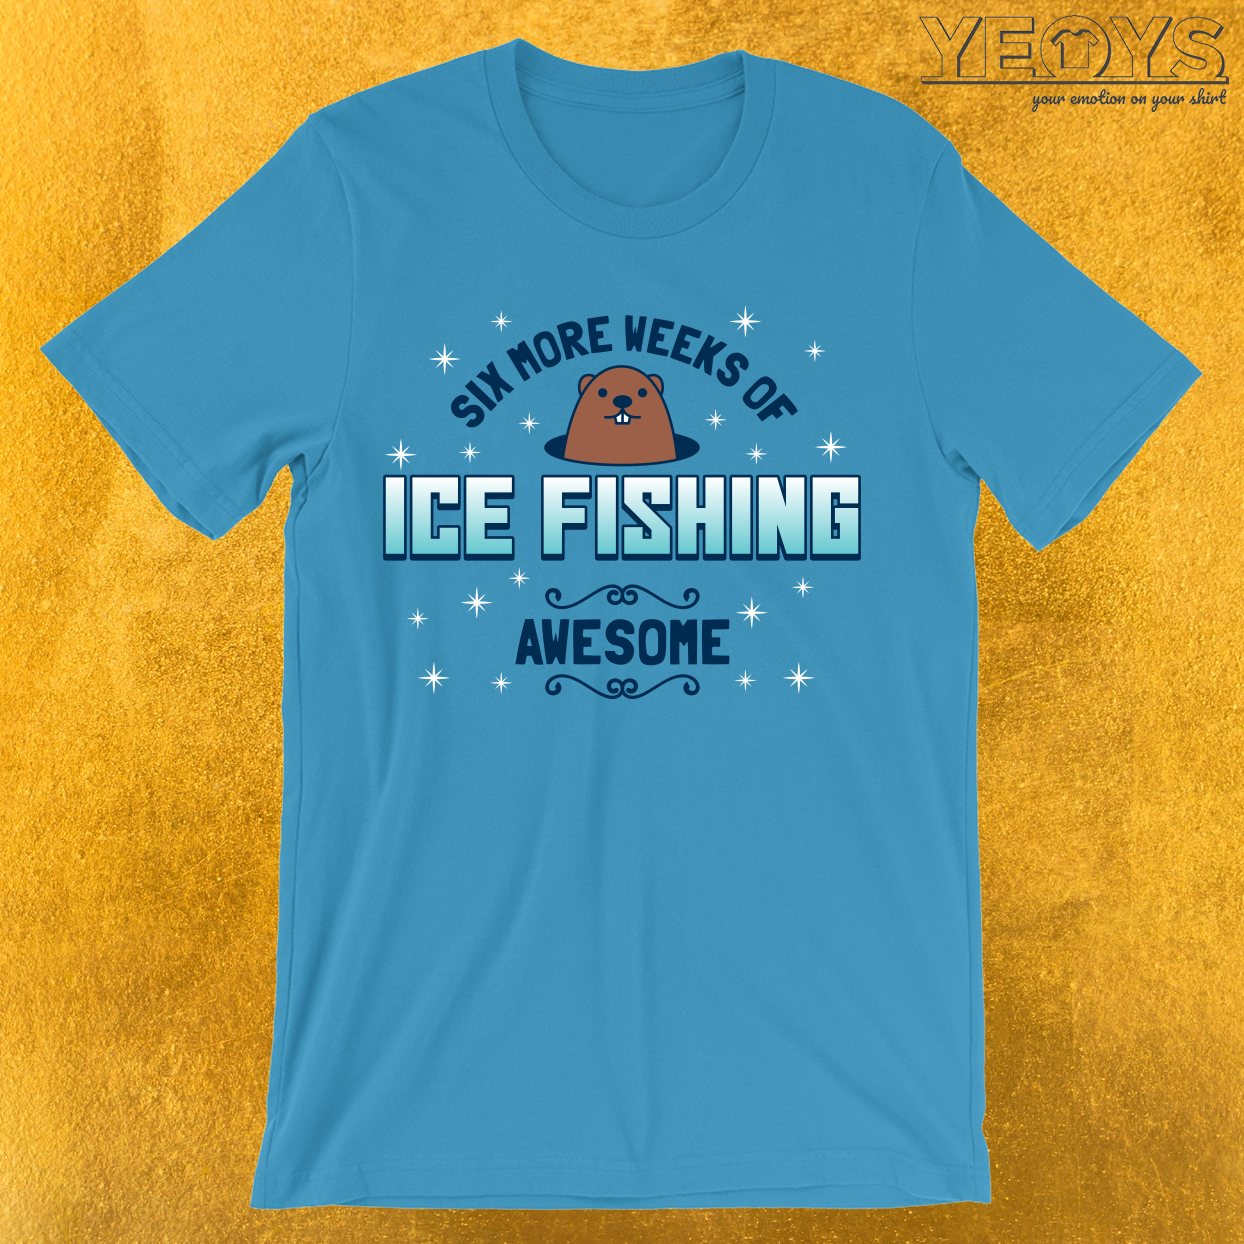 Six More Weeks Of Ice Fishing T-Shirt